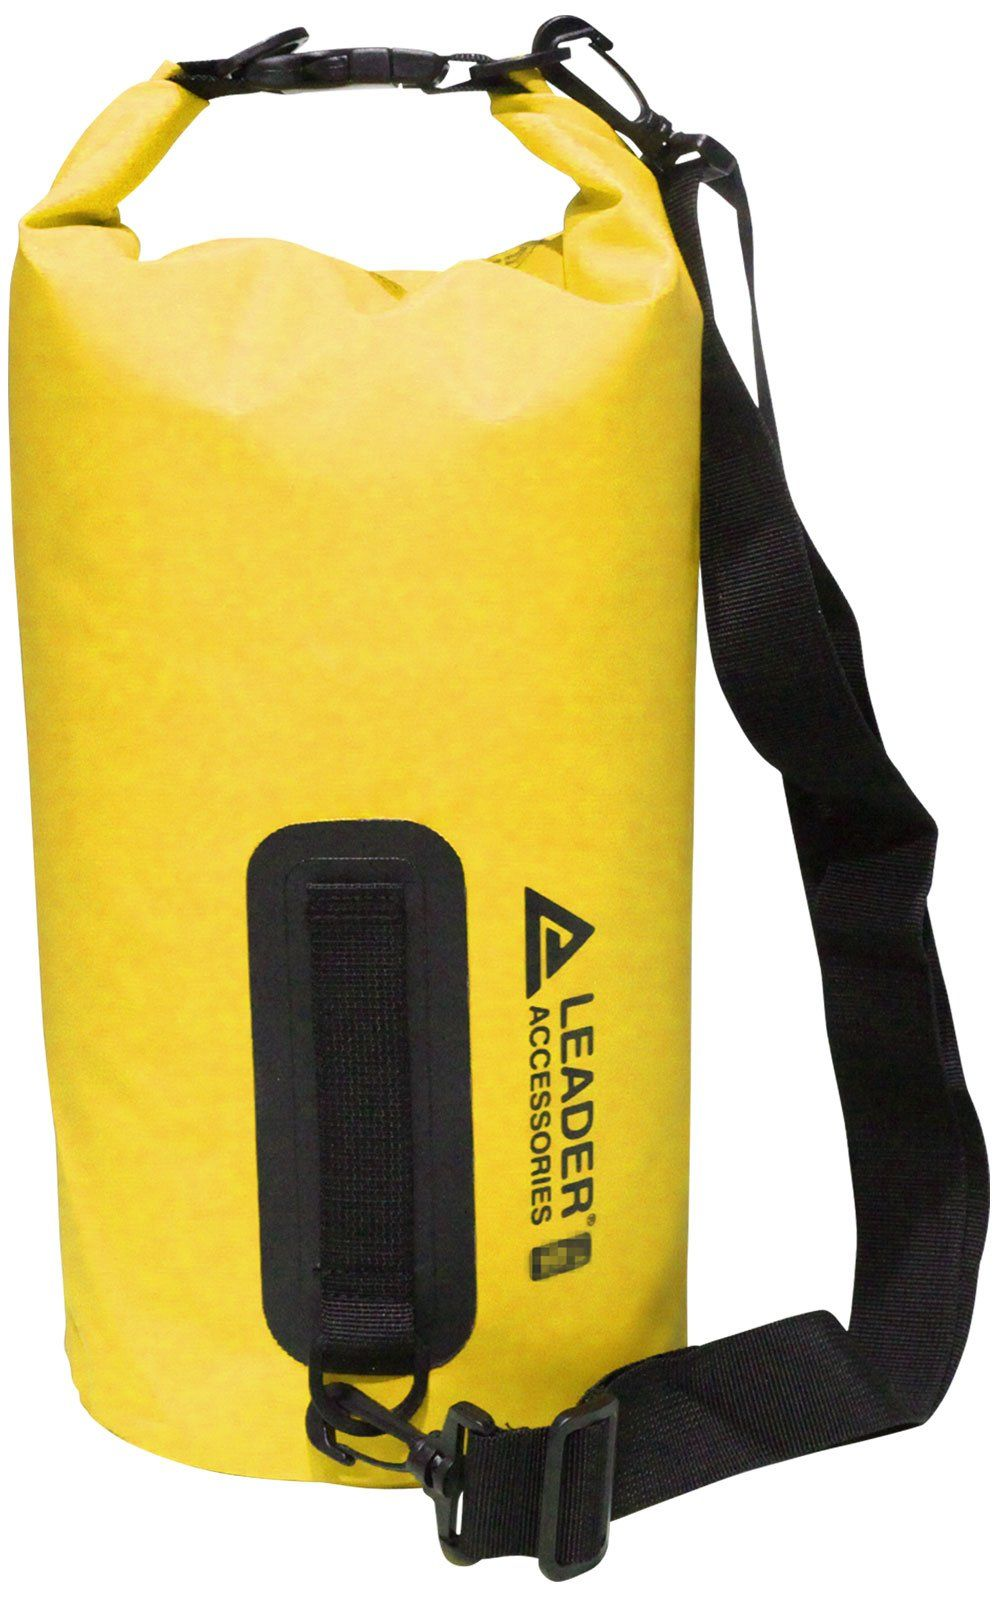 Canoe Storage    Leader Accessories New Heavy Duty Vinyl Waterproof Dry Bag  for Boating Kayaking Fishing Rafting Swimming Floating and Camping Yellow  20L ... 14c12a575abd9